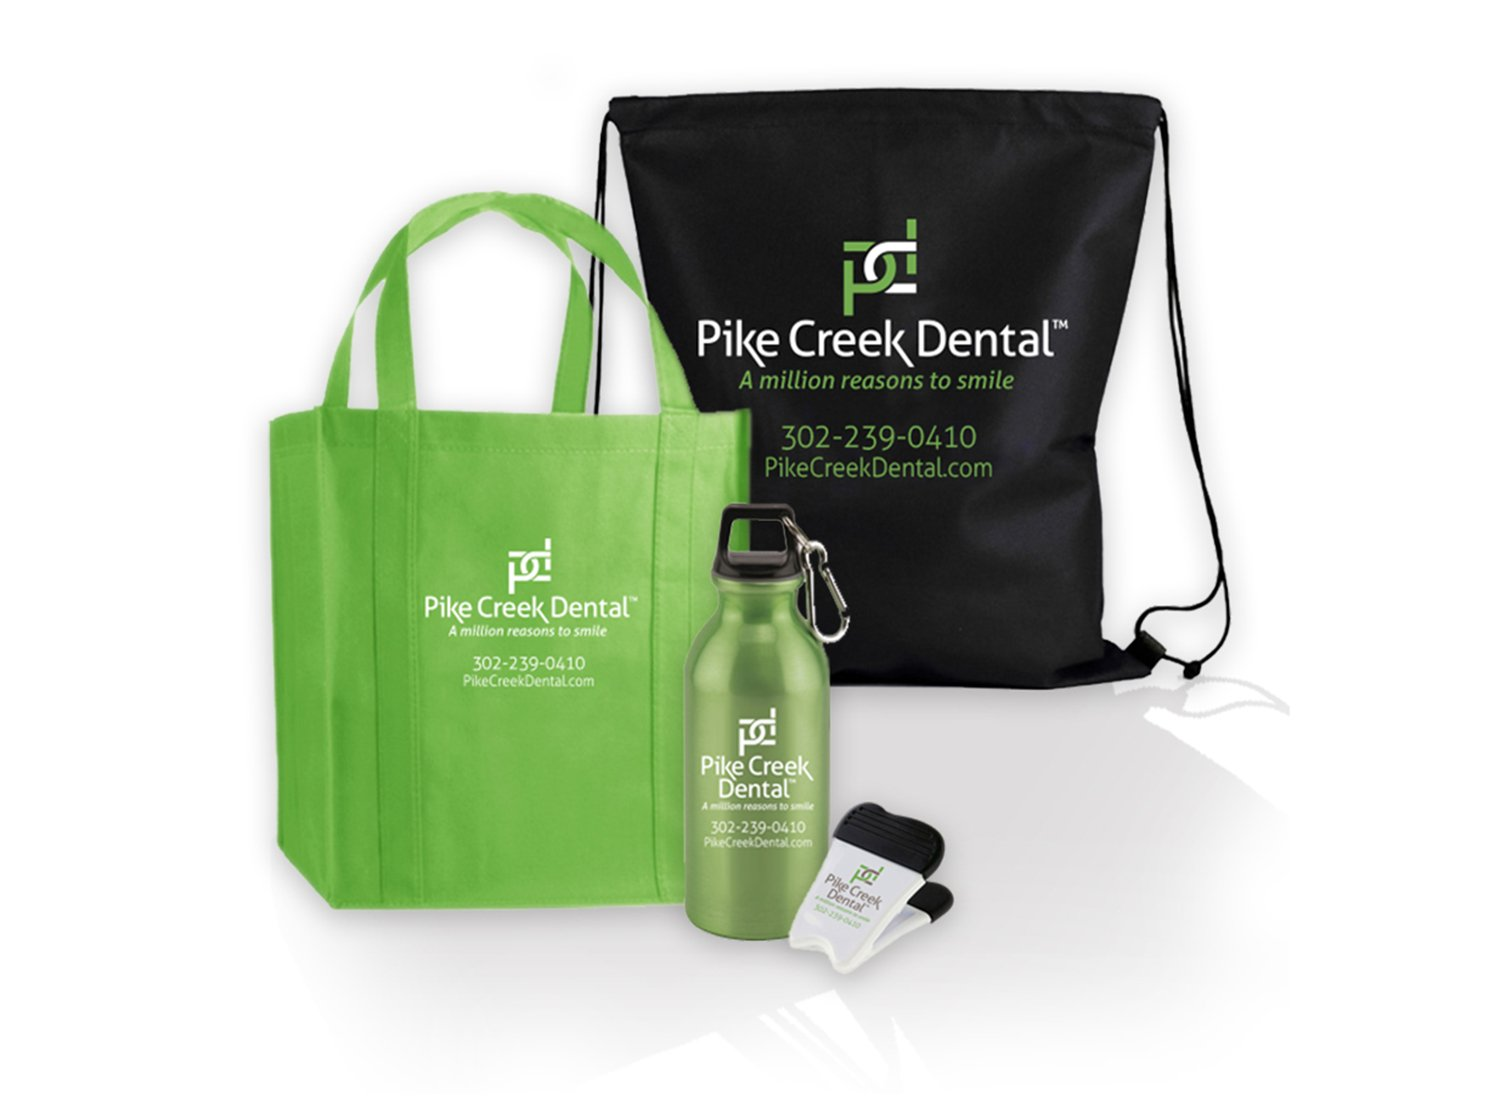 Blue Blaze logo designs marketing promotional materials for Pike Creek Dental